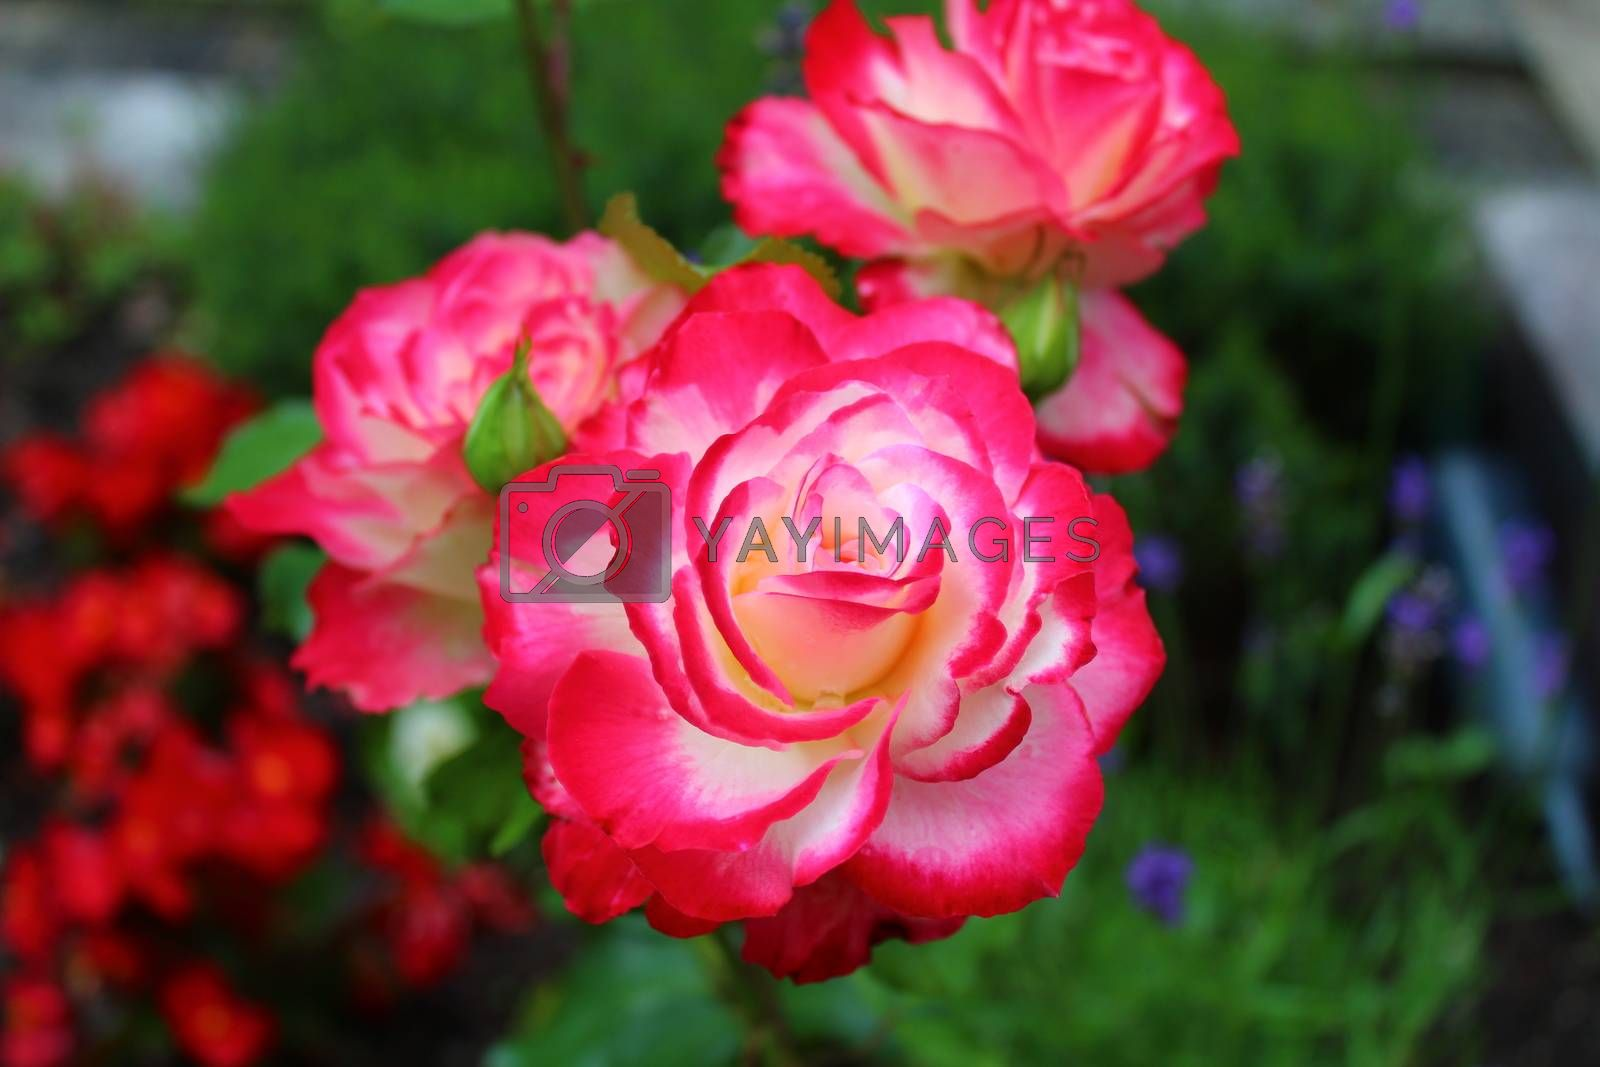 Royalty free image of red rose in the garden in the summer by martina_unbehauen